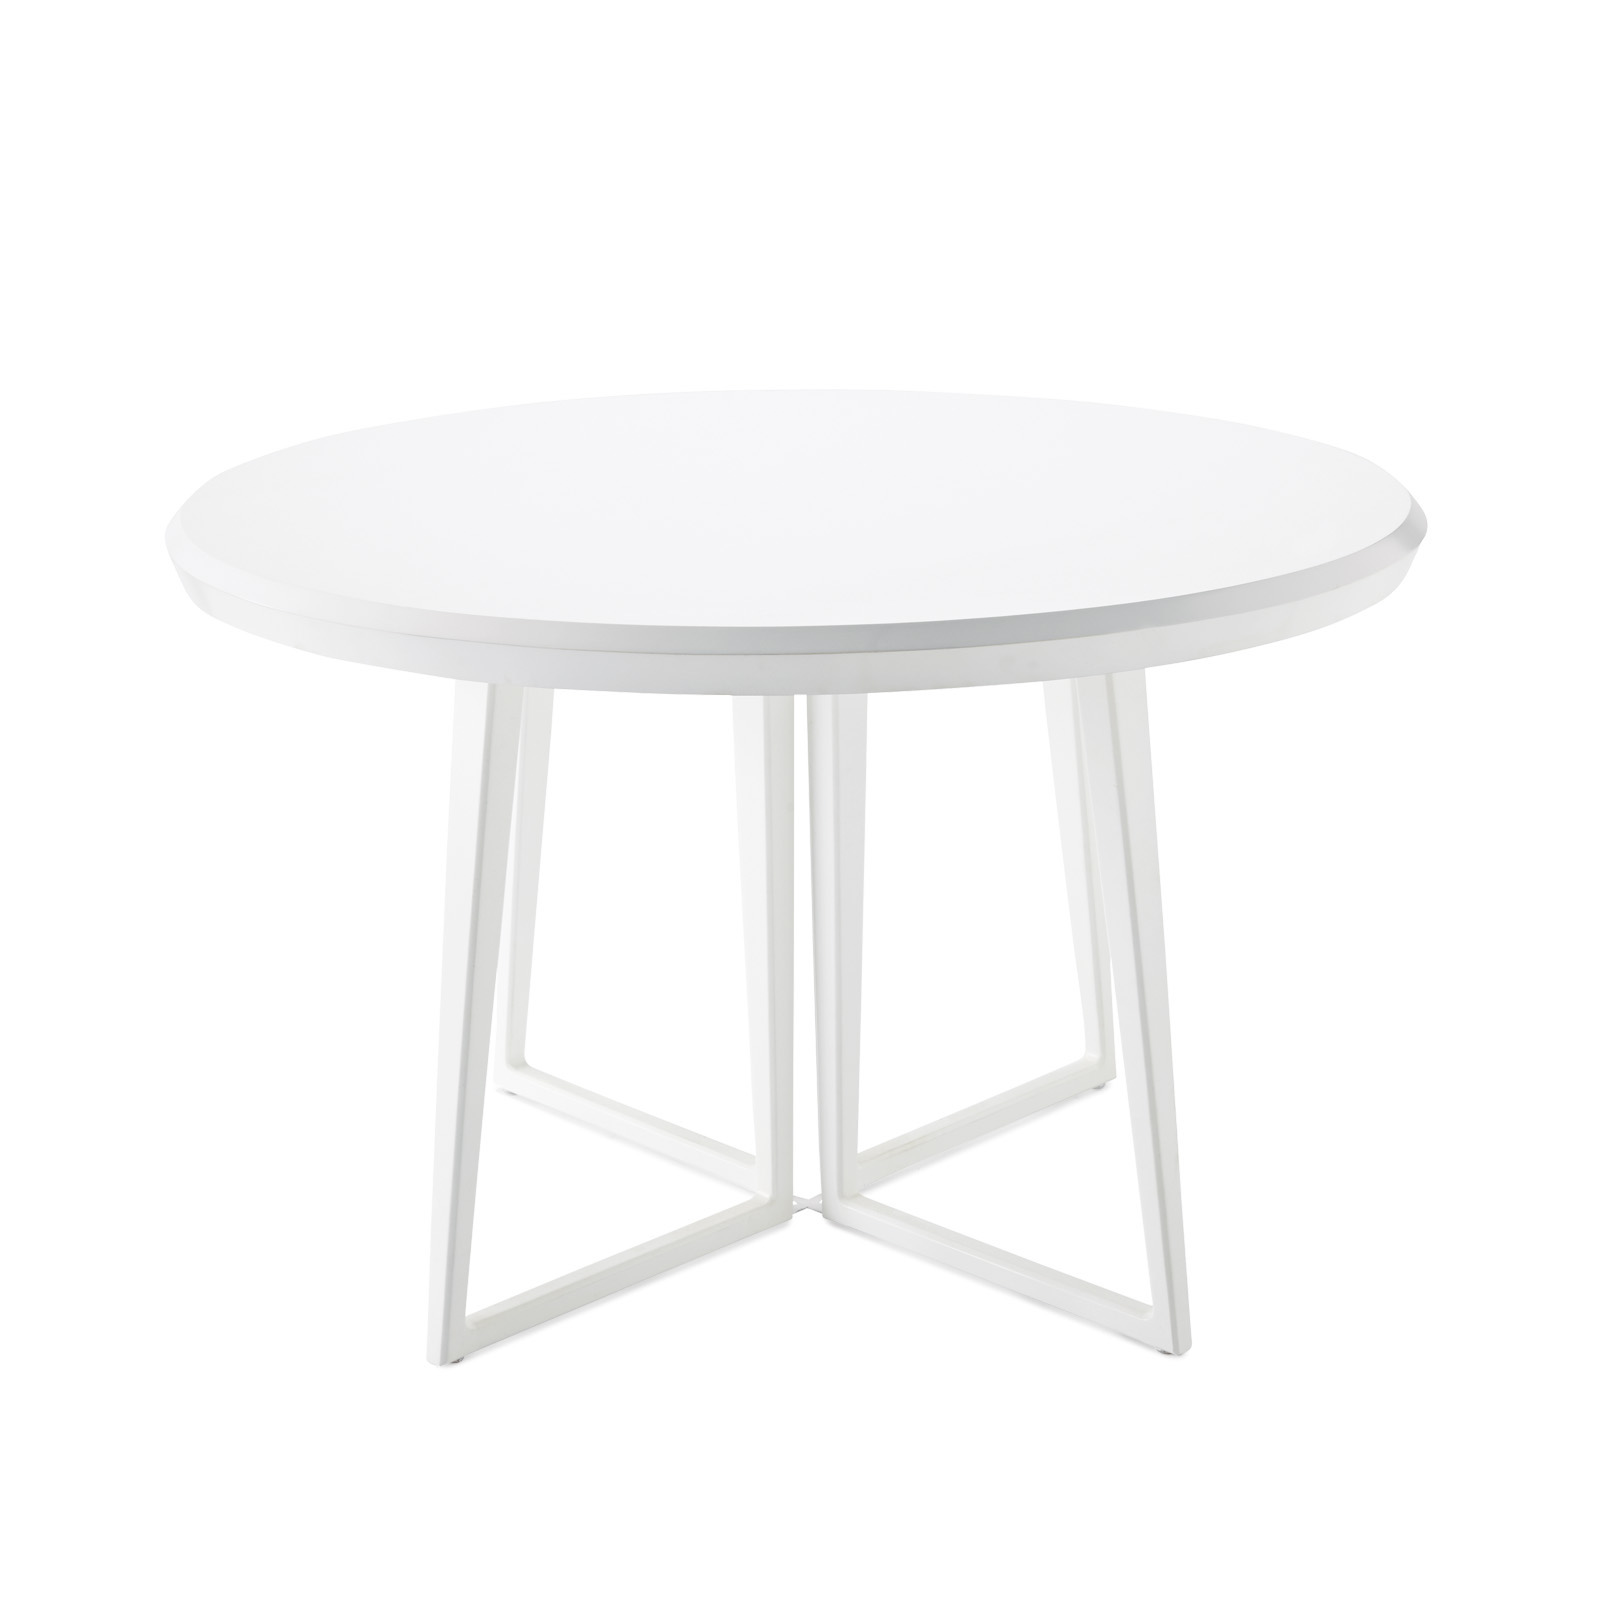 Furn_Dining_Table_Downing_Round_White_MV_Crop_SH.jpg